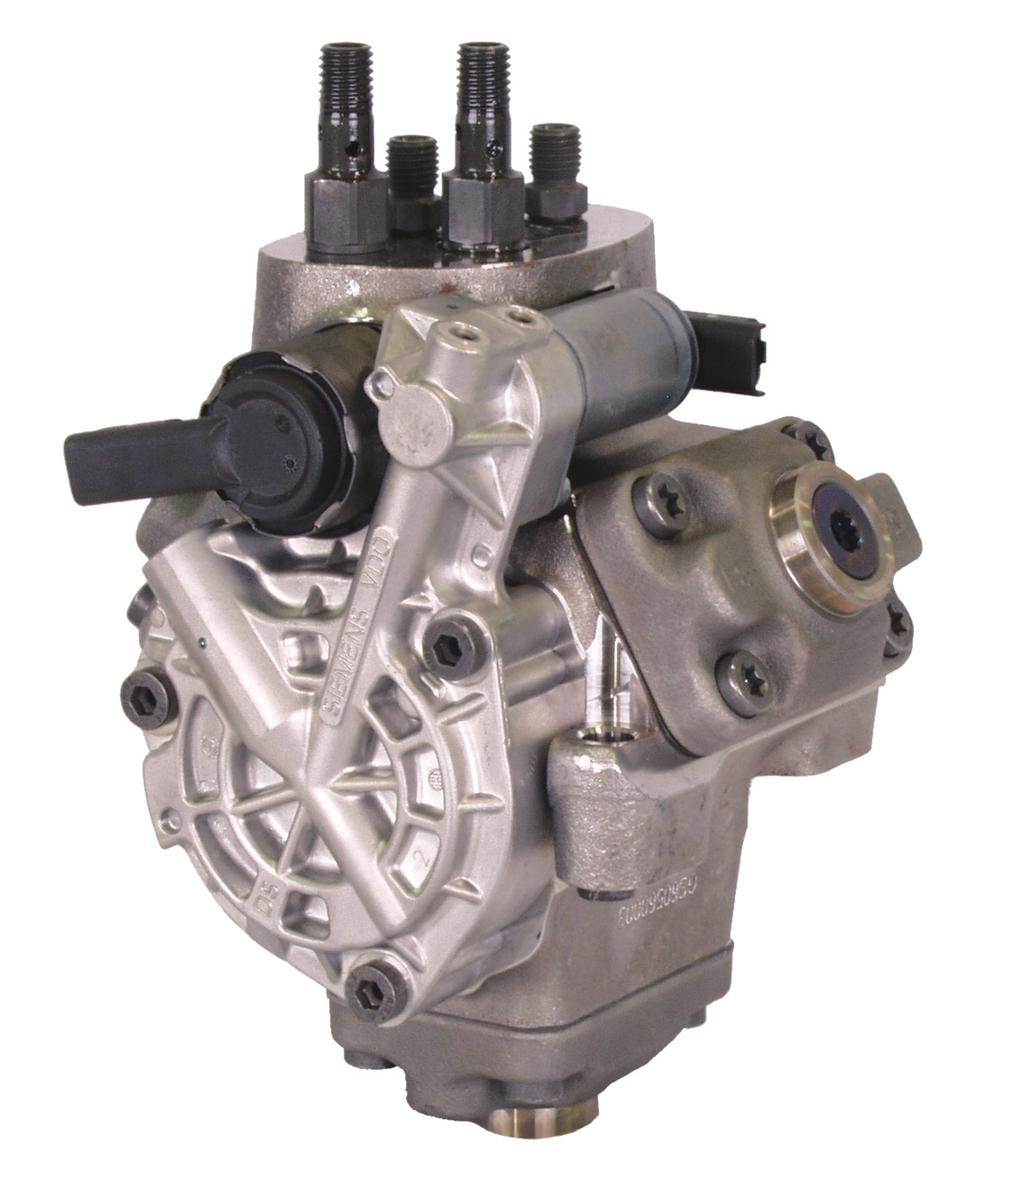 The pump is a three (3) piston rotary style pump that is driven by the rear gear train.